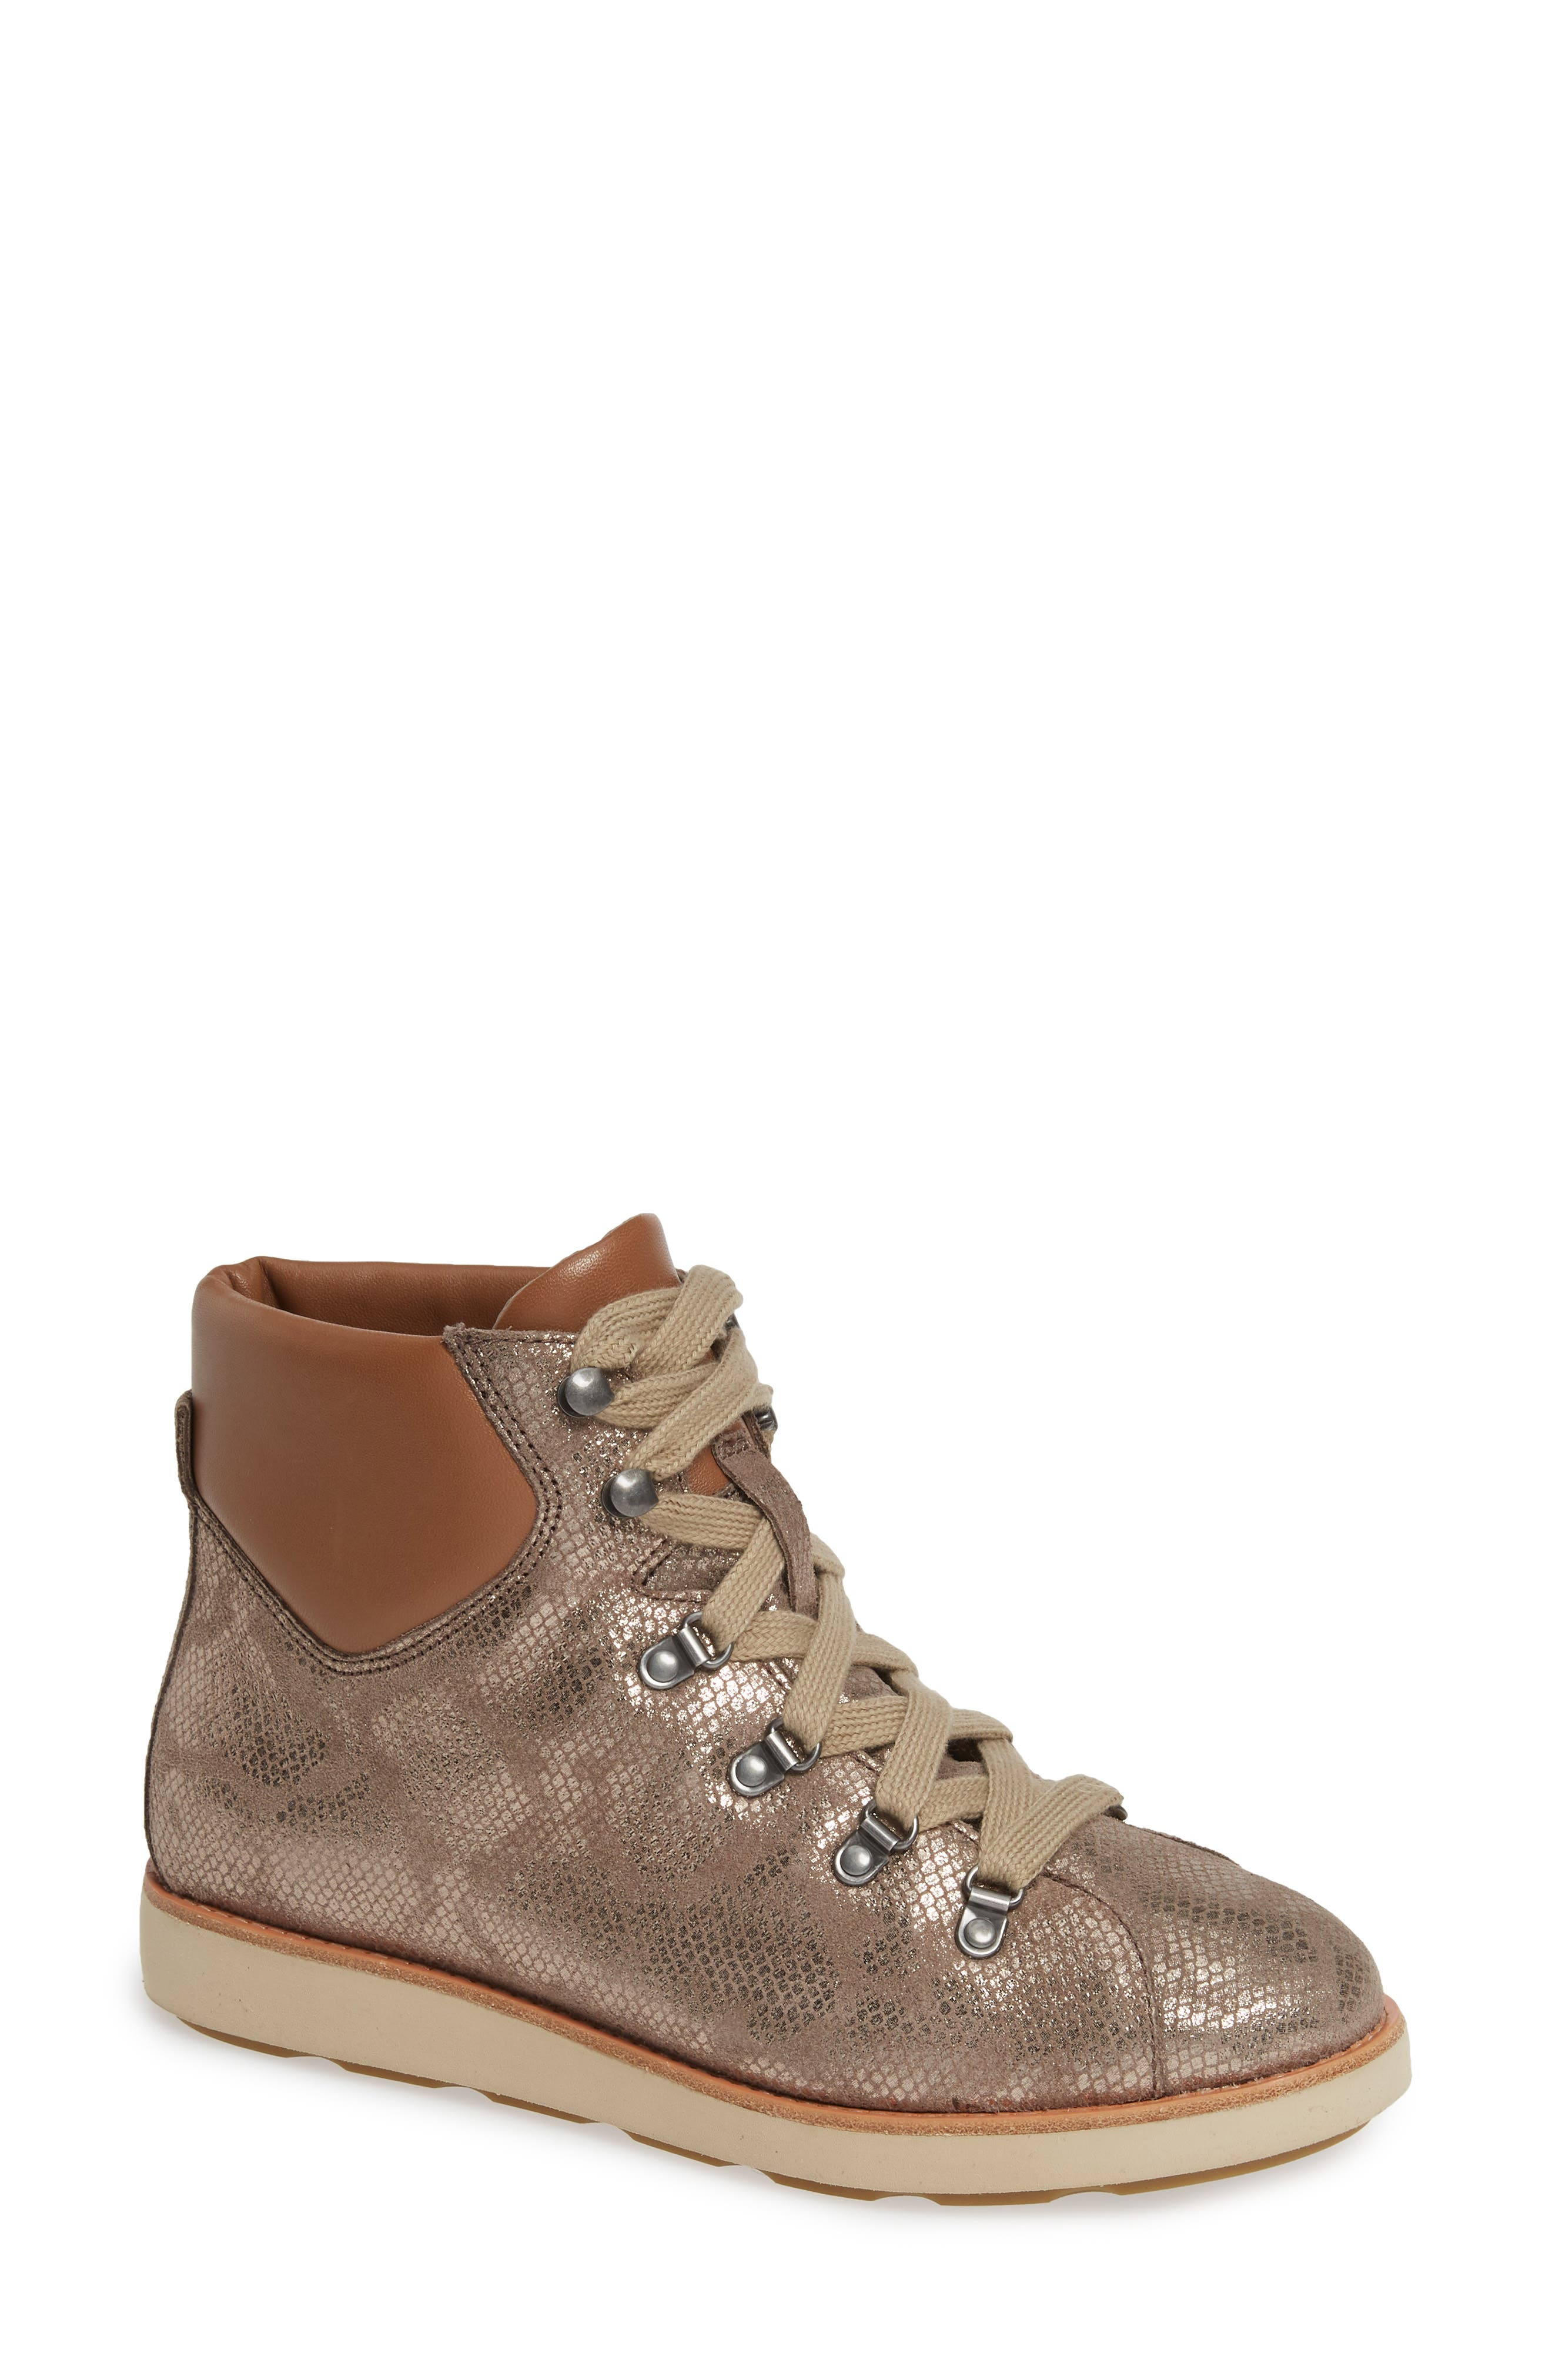 Bionica Natick Lace-Up Boot, Brown